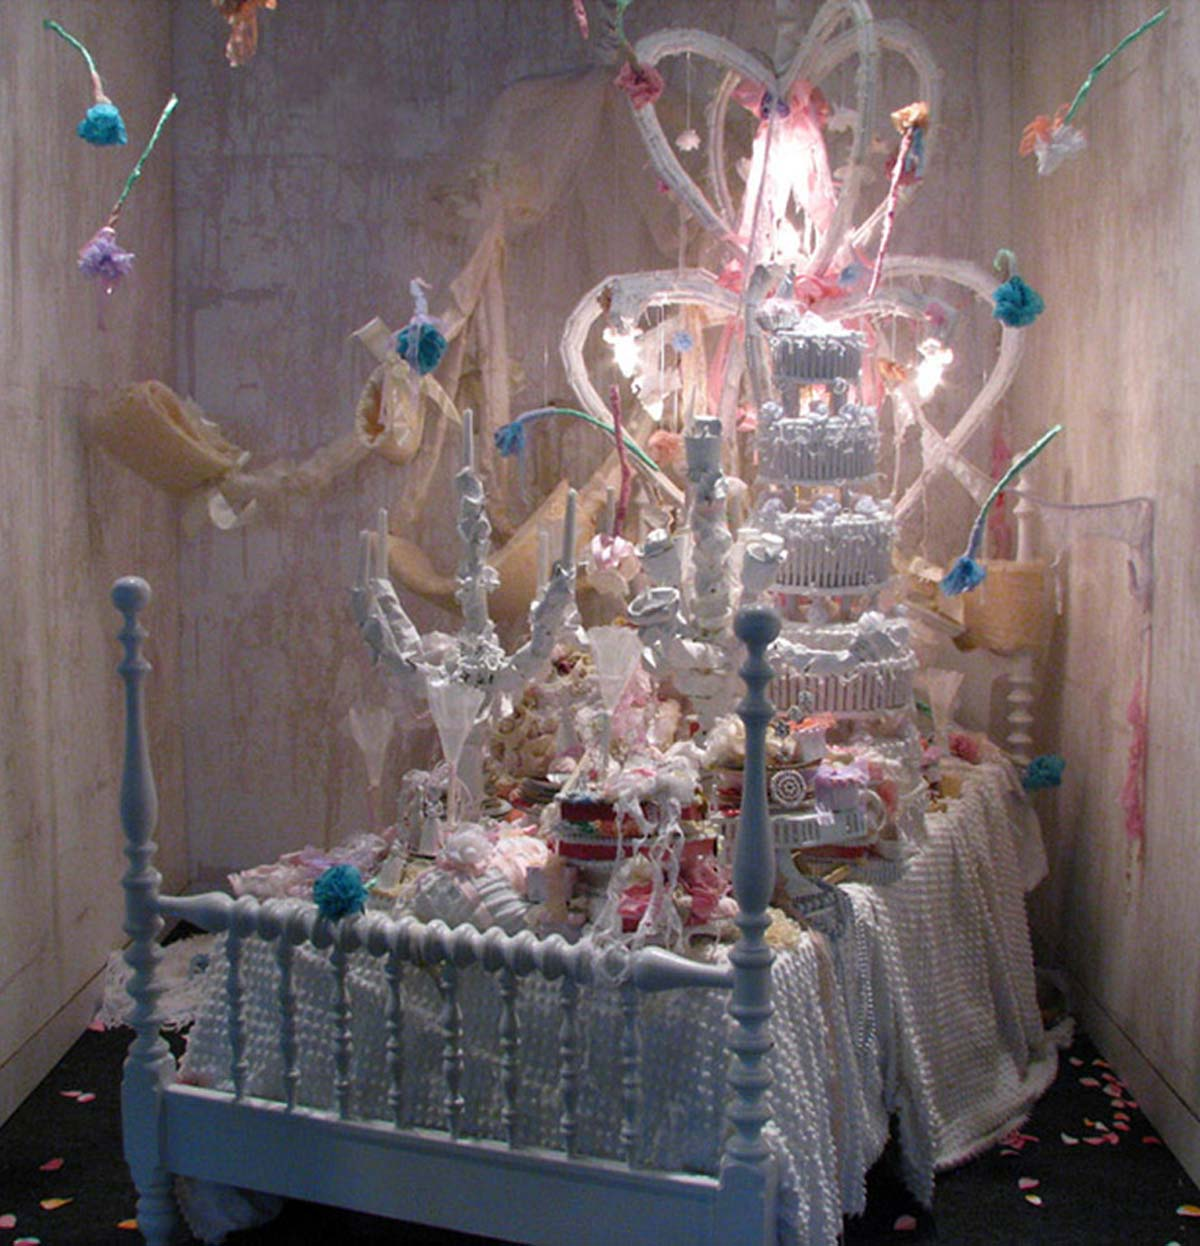 Reception, dimensions vary (roughly 8x10'), bed, wedding dress, tampons, birth control pills, underwear, candles, wax paper, plates, chocolate, ribbon, chenille bedspreads, paint, mixed media, 2009